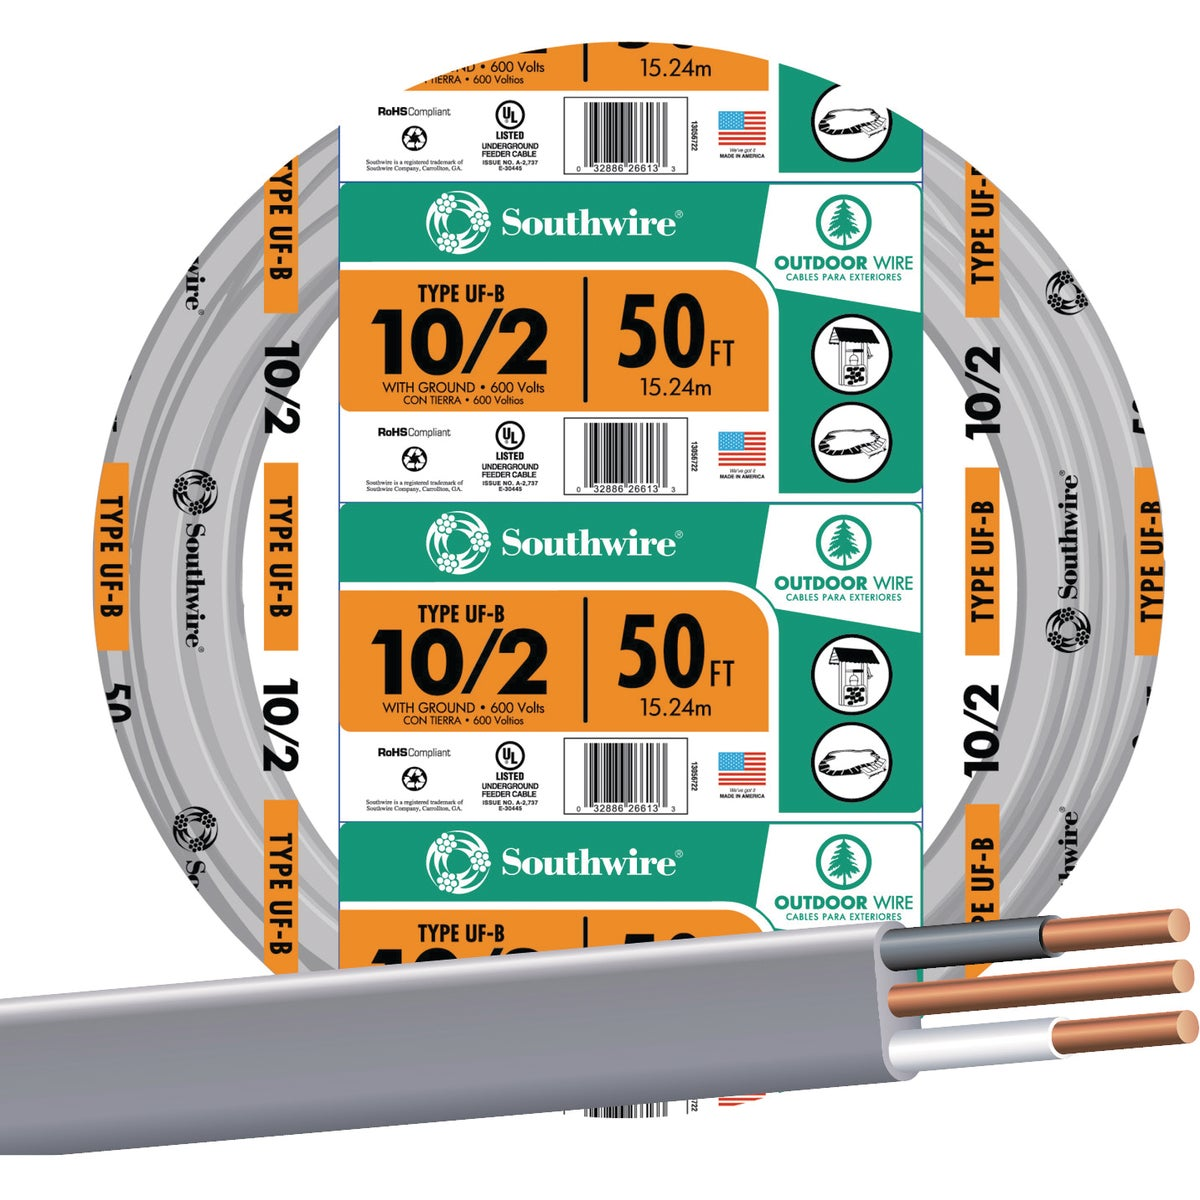 50' 10-2 UFW/G WIRE - 13056722 by Southwire Company